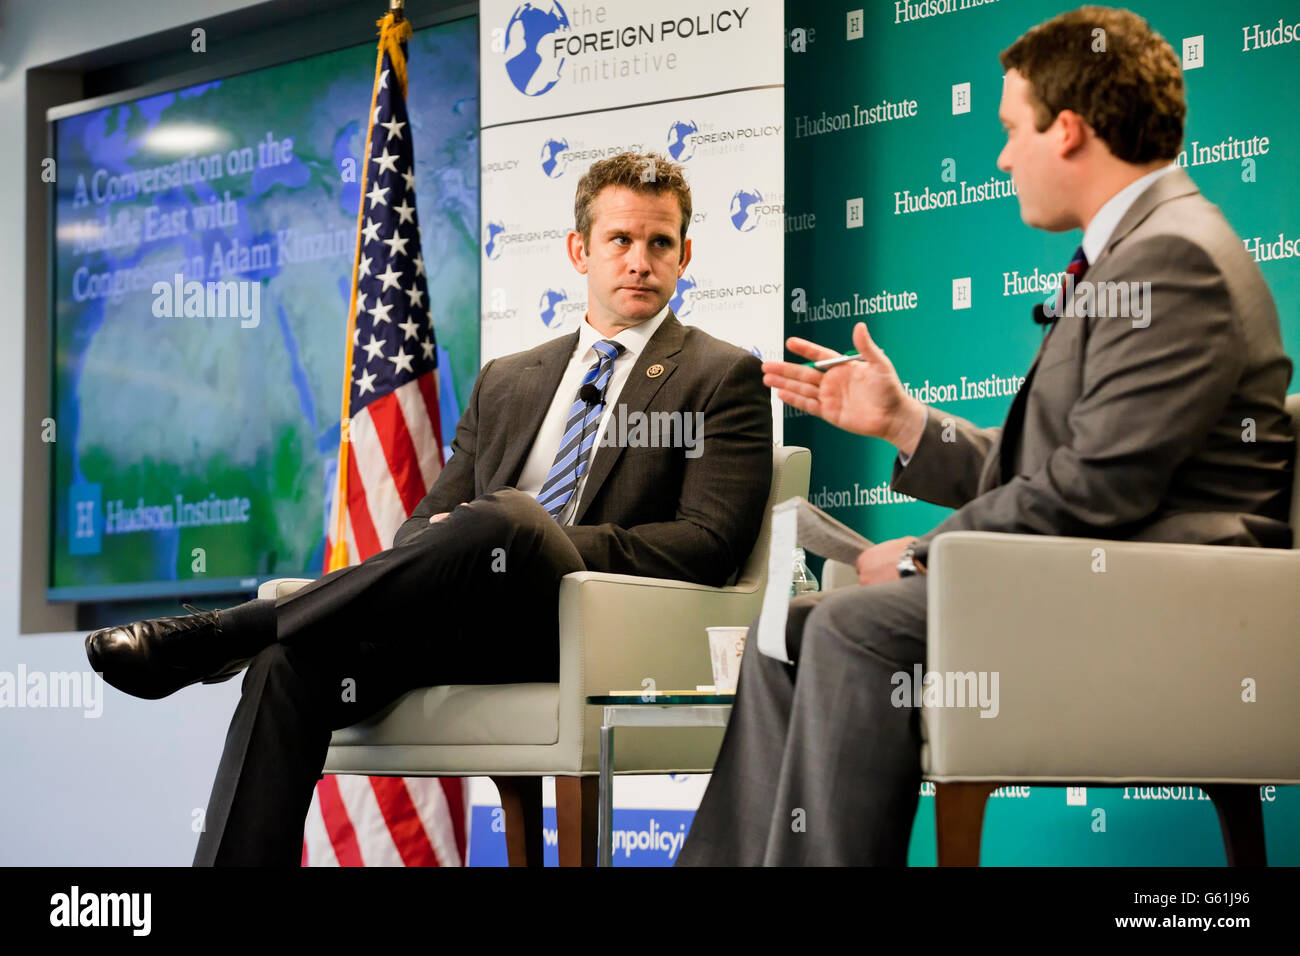 May 26, 2016: Illinois republican congressman Adam Kinzinger speaking at Hudson Institute - Washington, DC USA - Stock Image